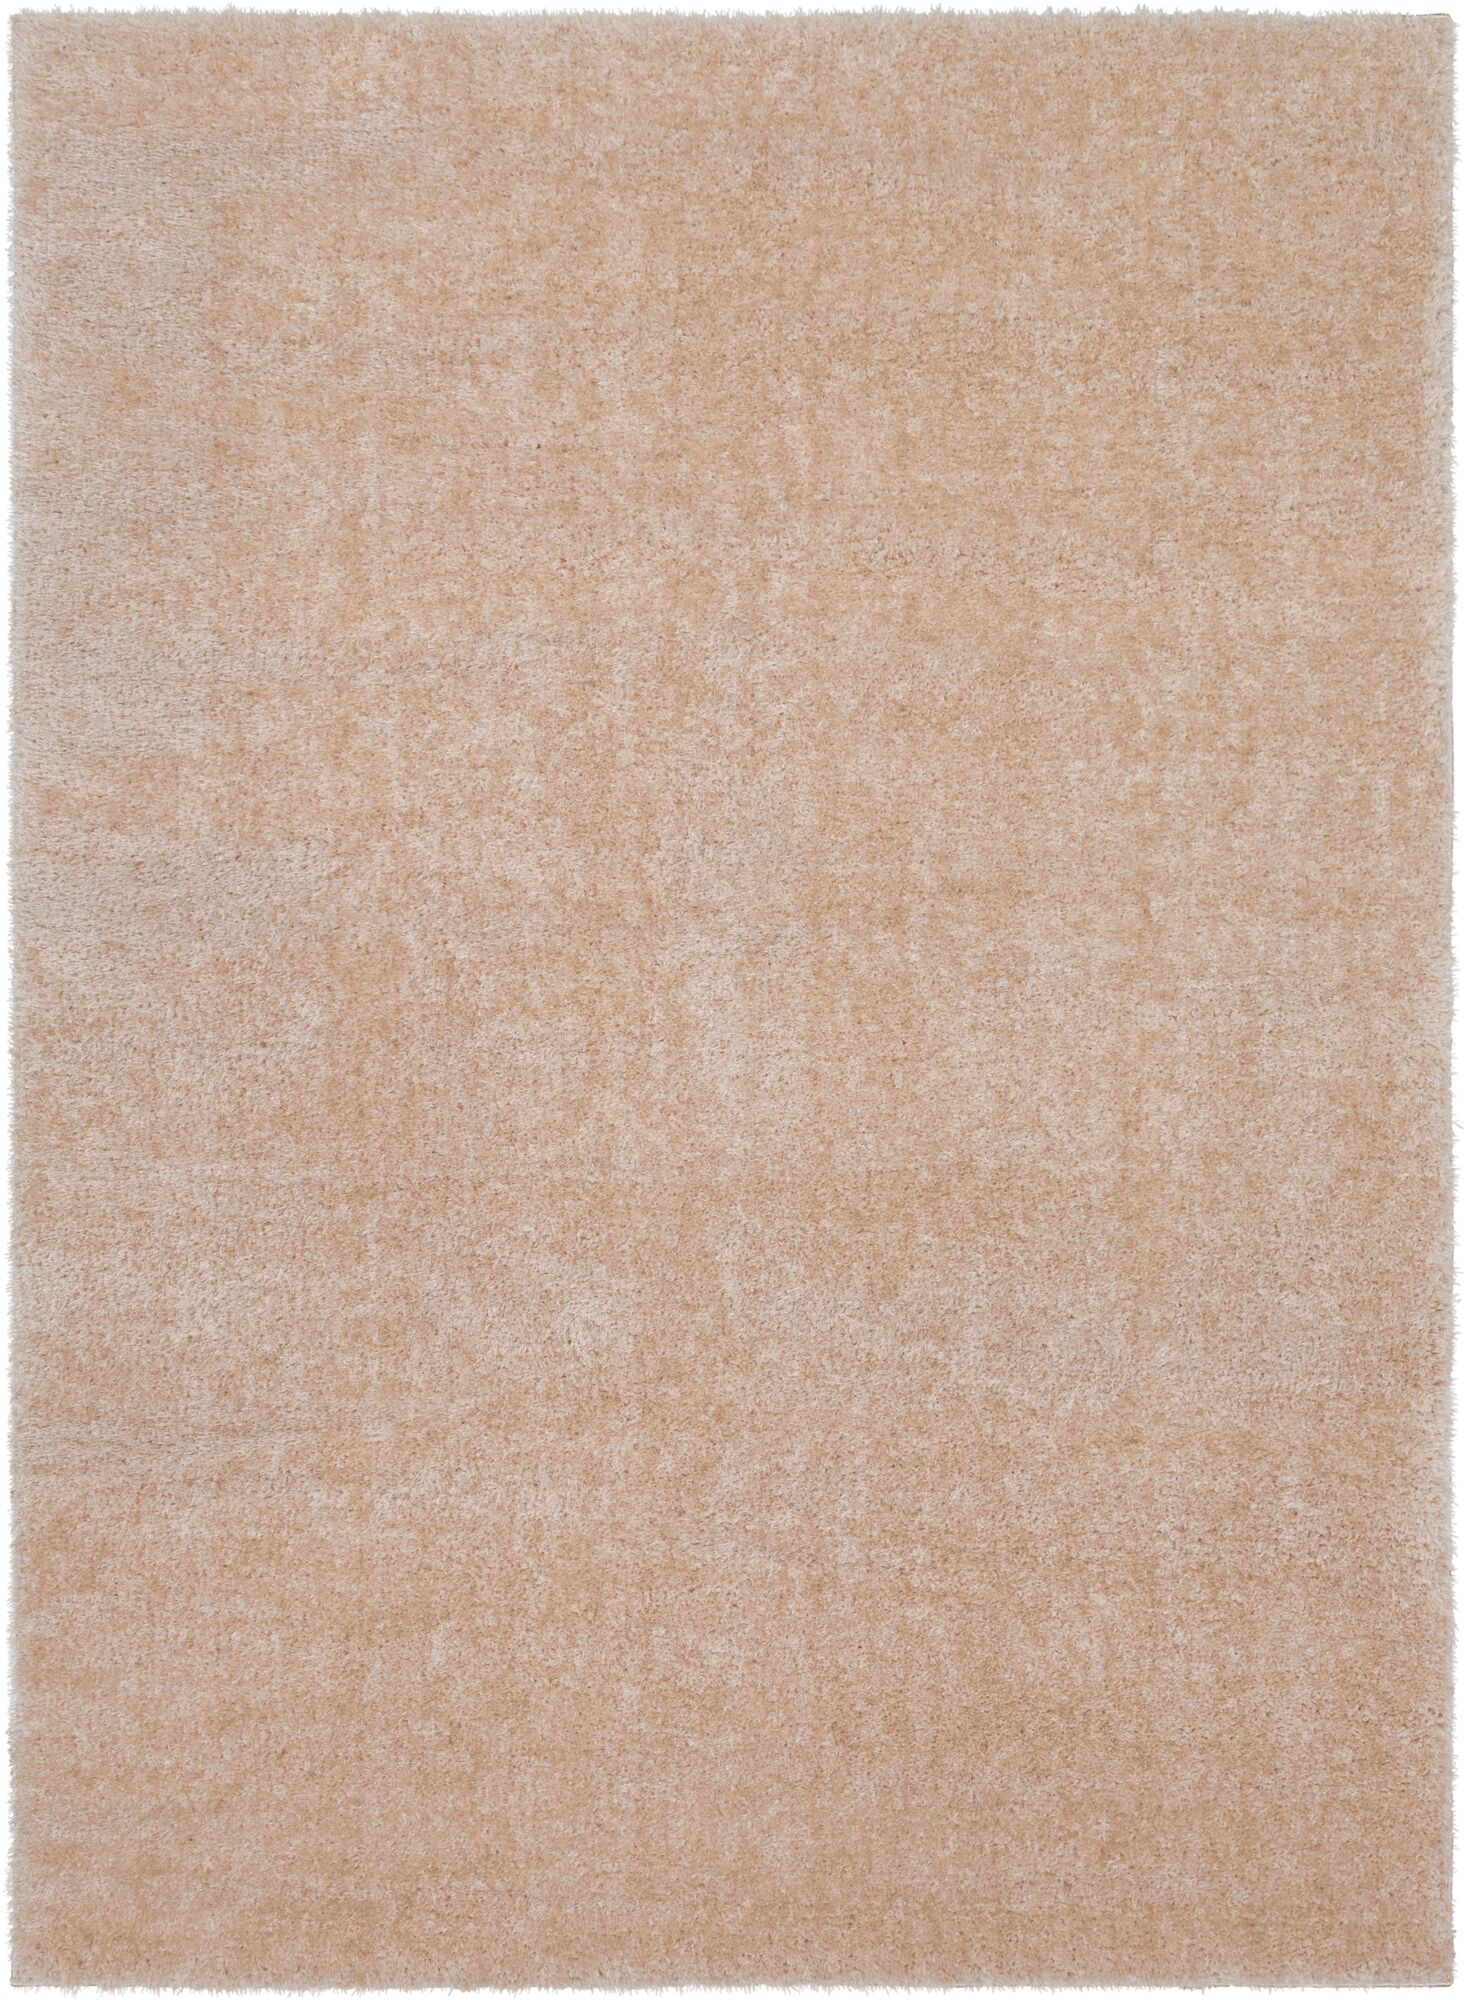 Carlos Shag Plush Blush Area Rug Rug Size: Rectangle 5'3